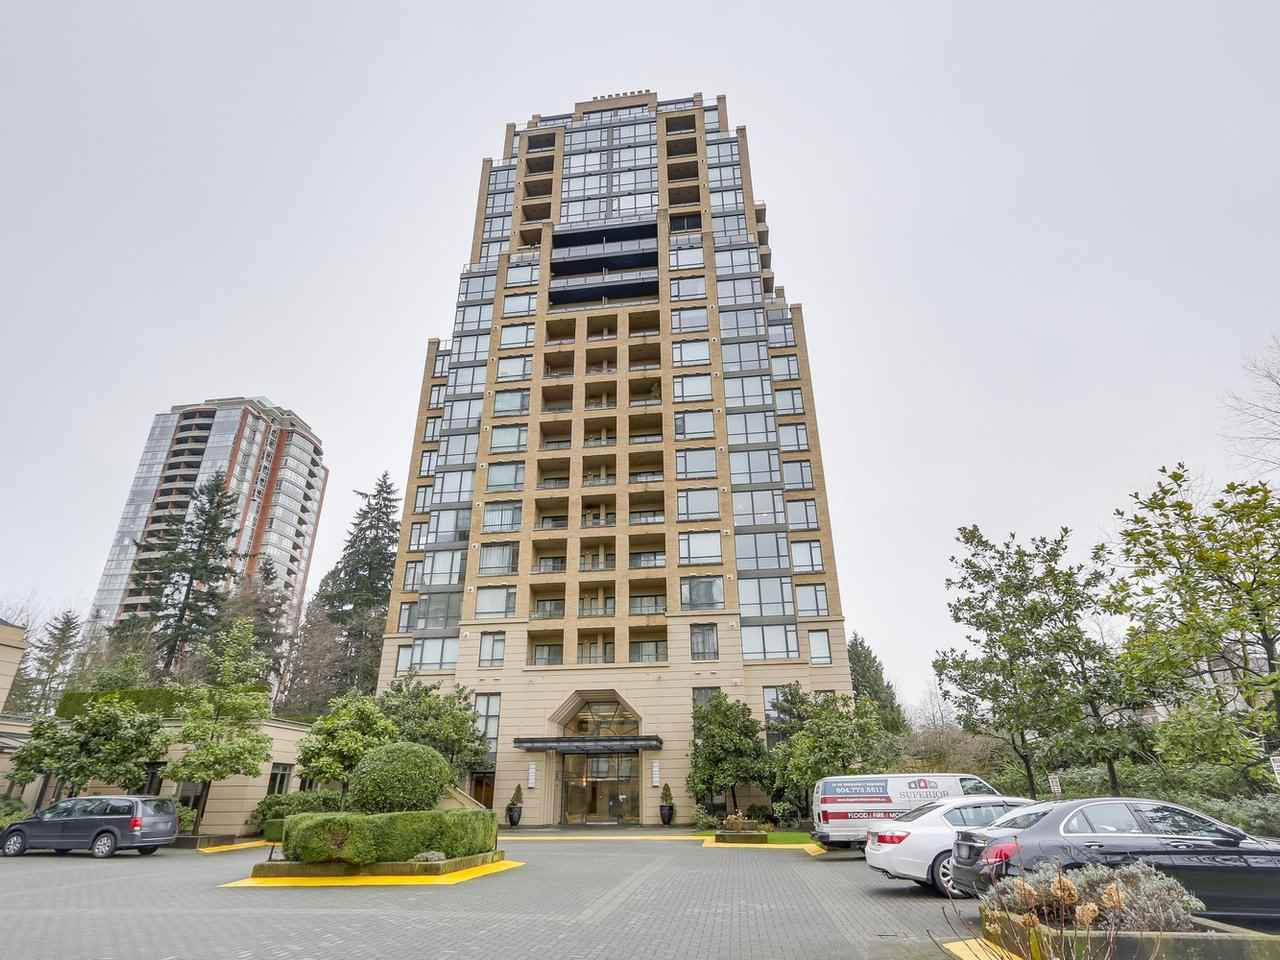 """Main Photo: 603 7388 SANDBORNE Avenue in Burnaby: South Slope Condo for sale in """"MAYFAIR 2"""" (Burnaby South)  : MLS®# R2237572"""